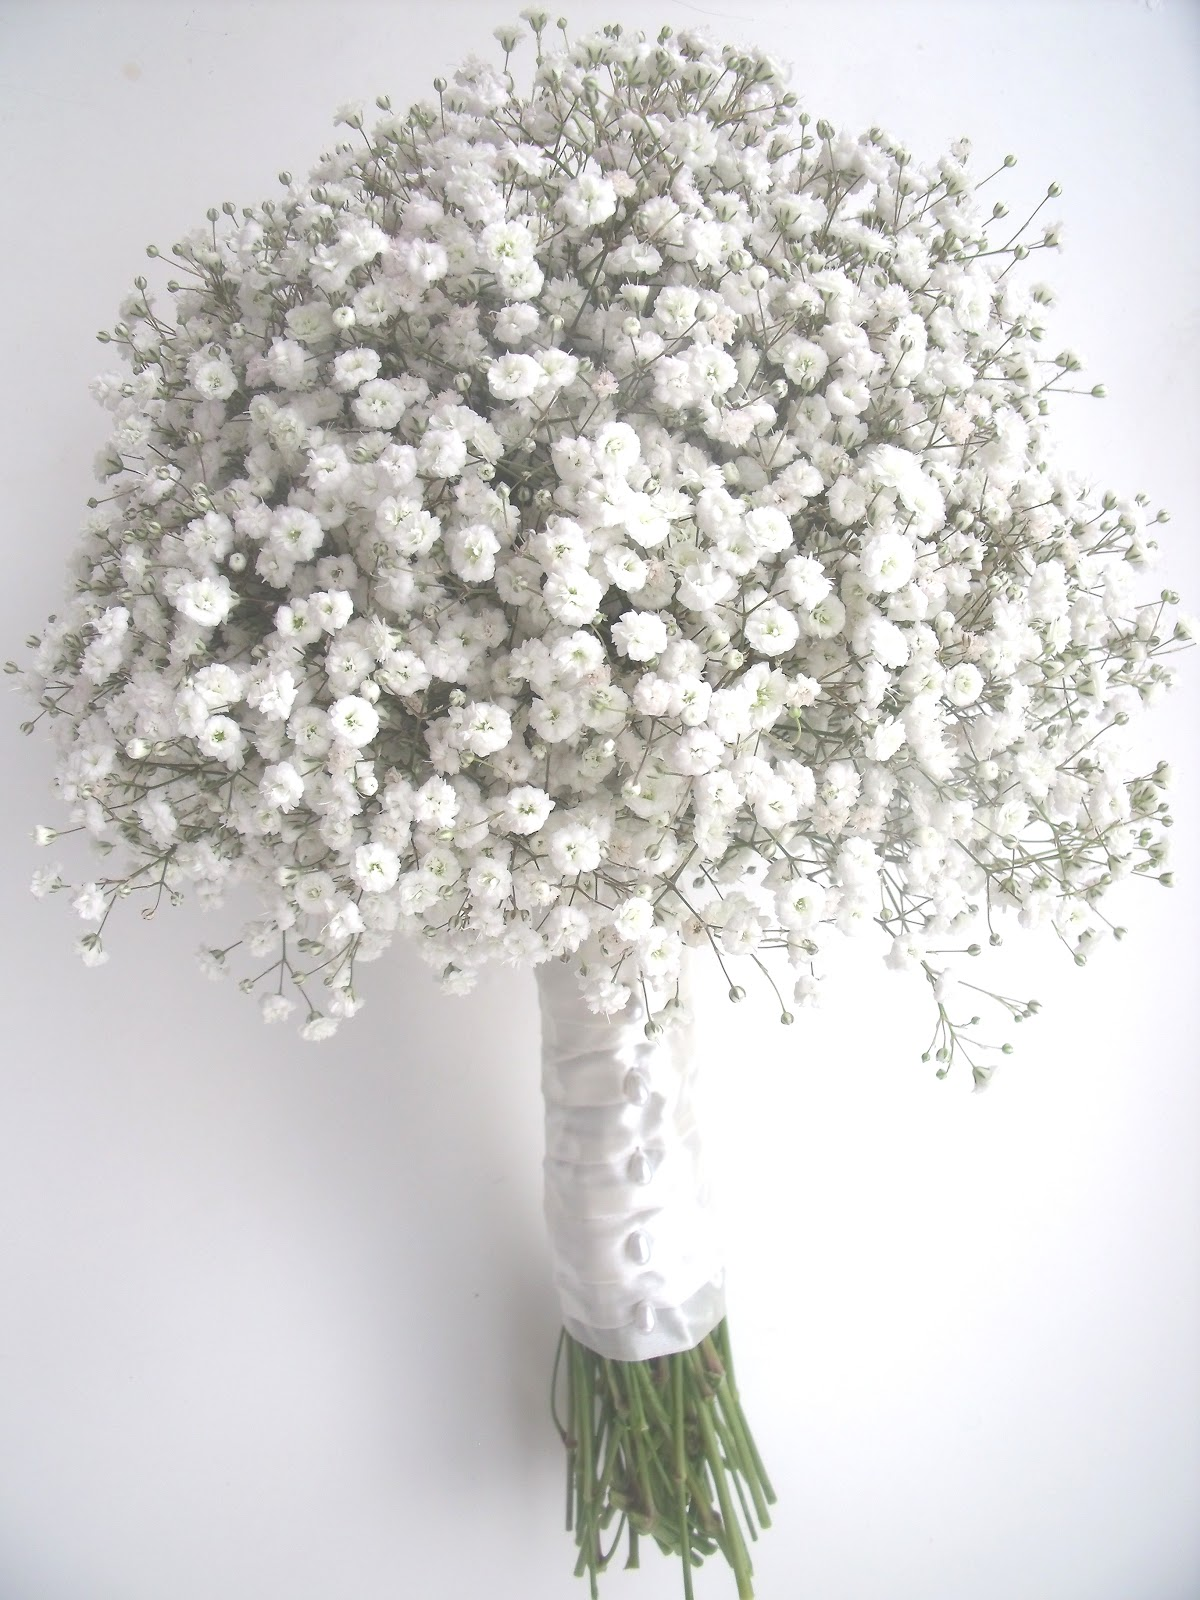 vidabela Gypsophila wedding bouquets